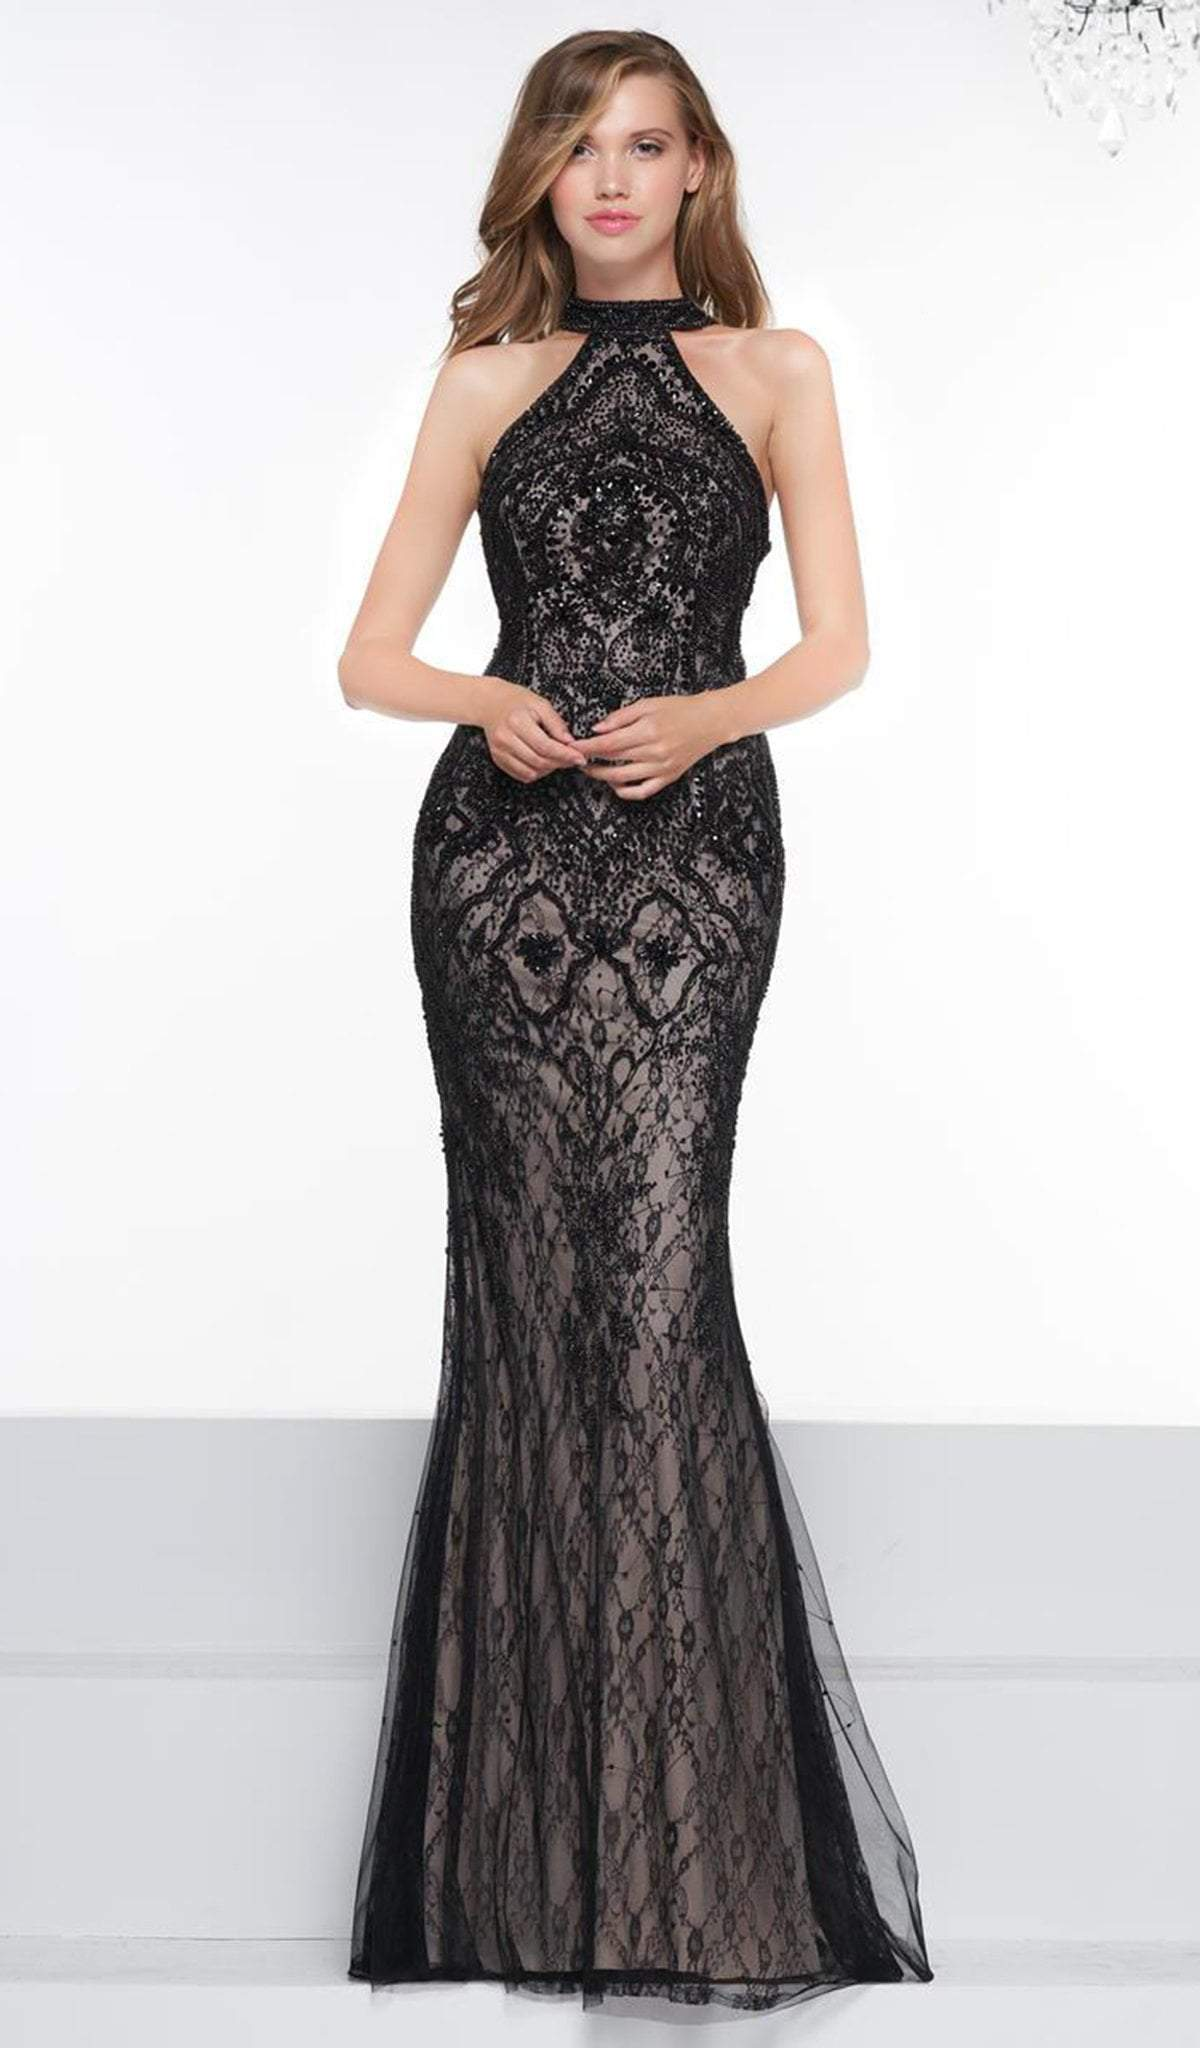 Colors Couture - J081 Lace High Halter Trumpet Dress With Overskirt In Black and Neutral